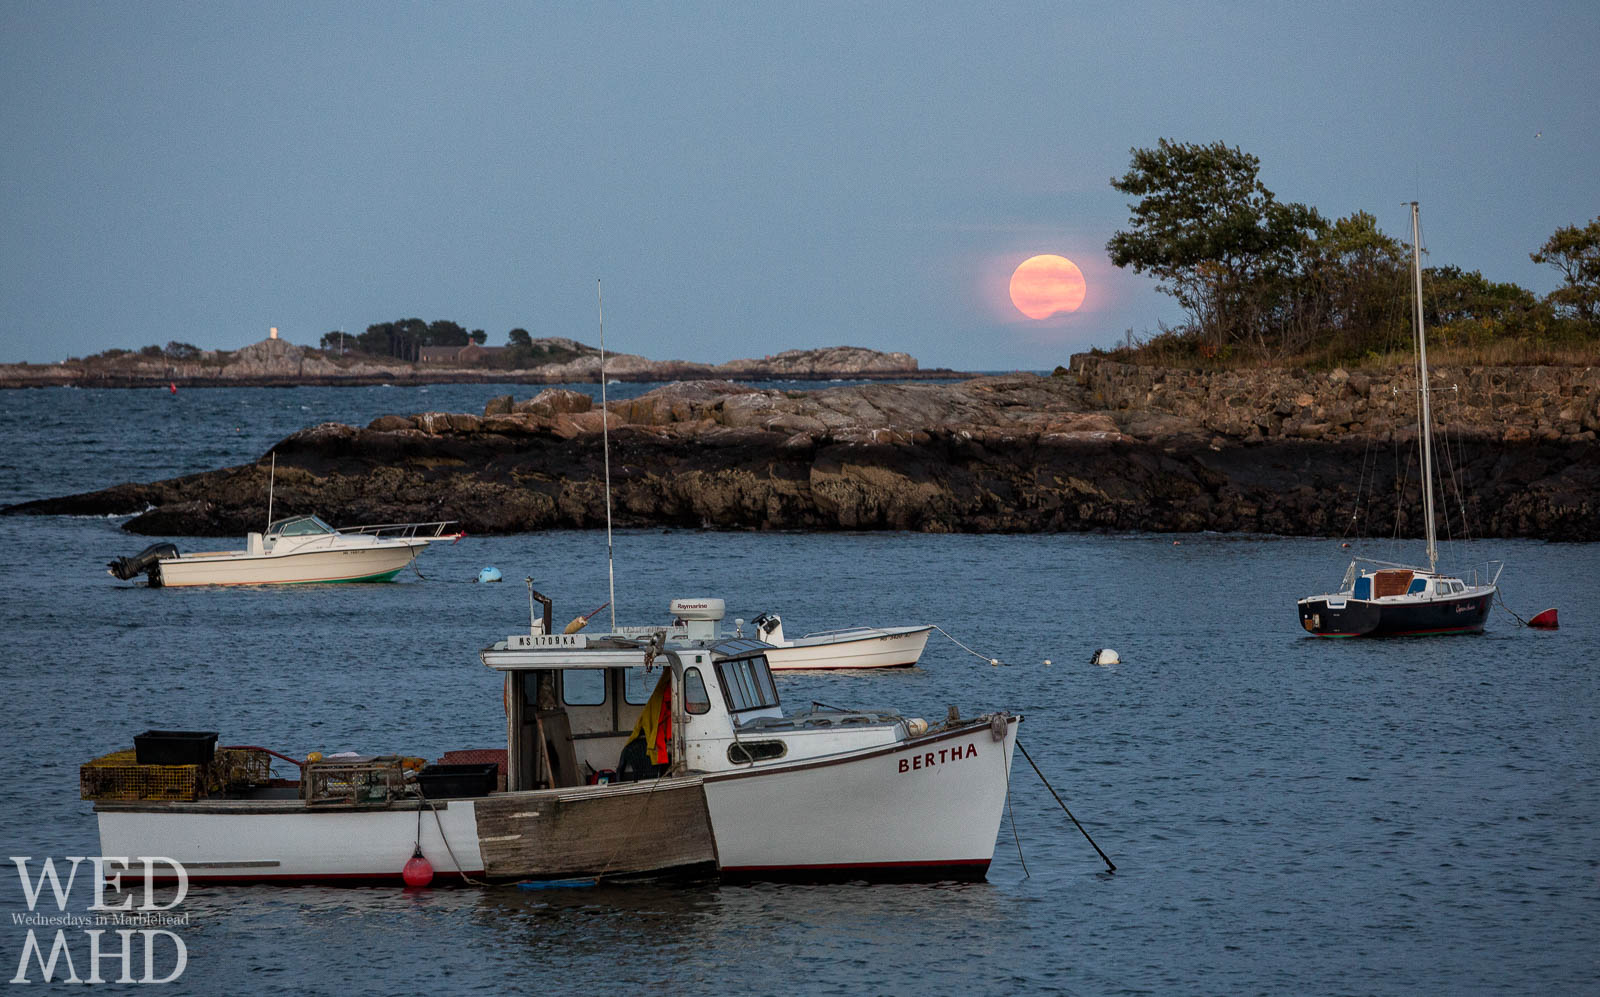 The working boat Bertha is moored in Little Harbor as the Harvest Moon rises over Marblehead